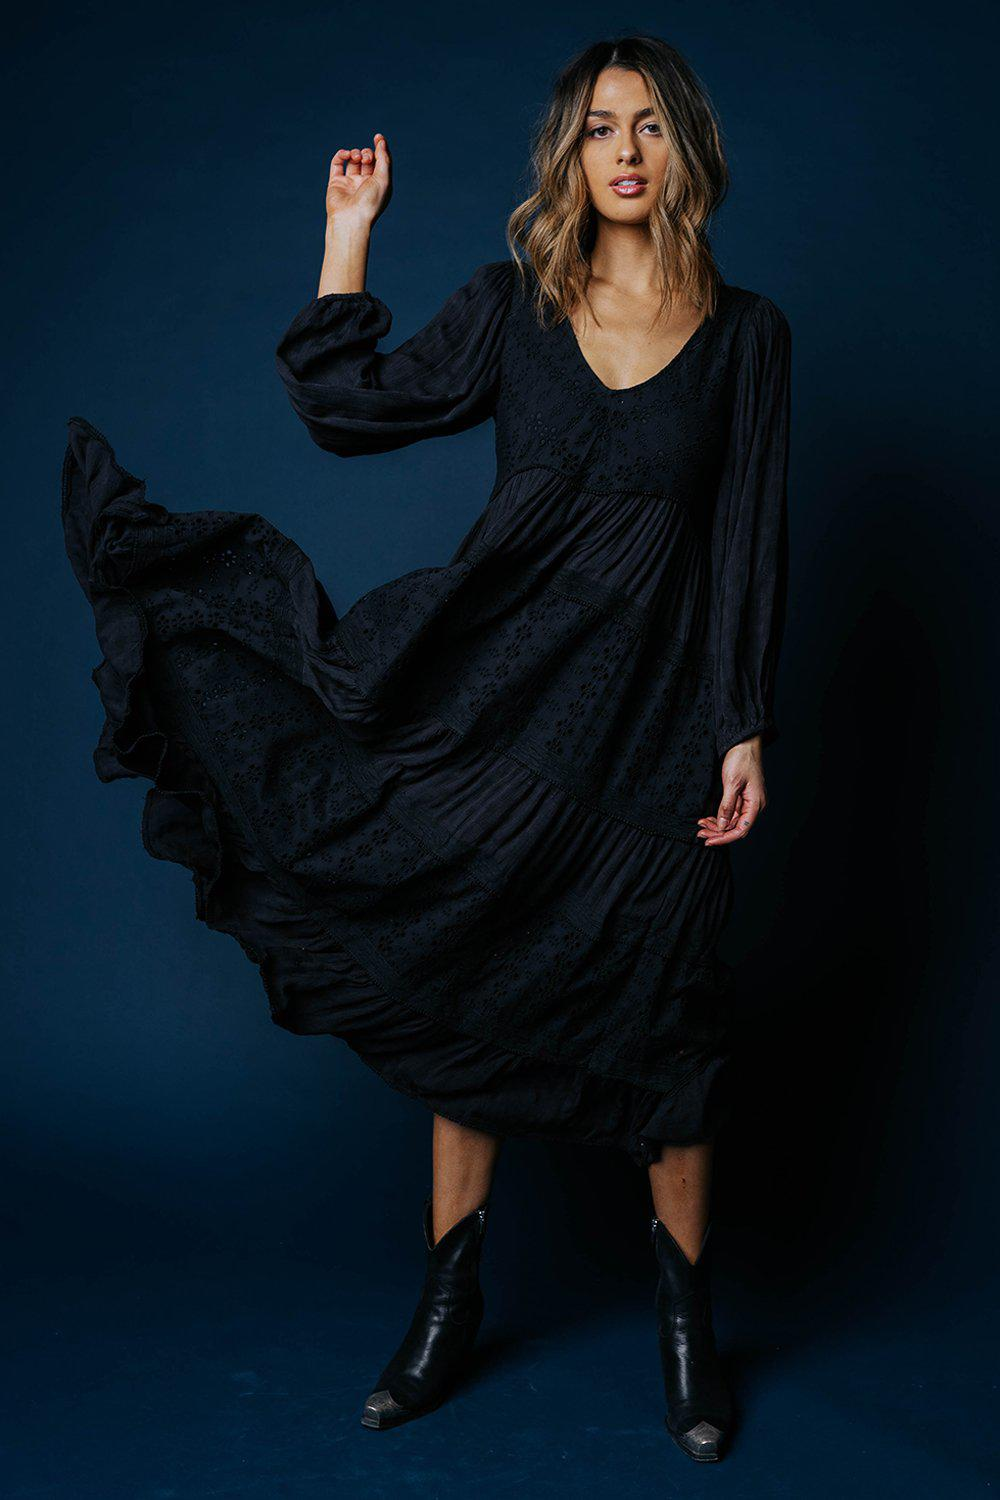 Free People Mockingbird Maxi Dress in Black-Dress-Free People-S-Clad & Cloth